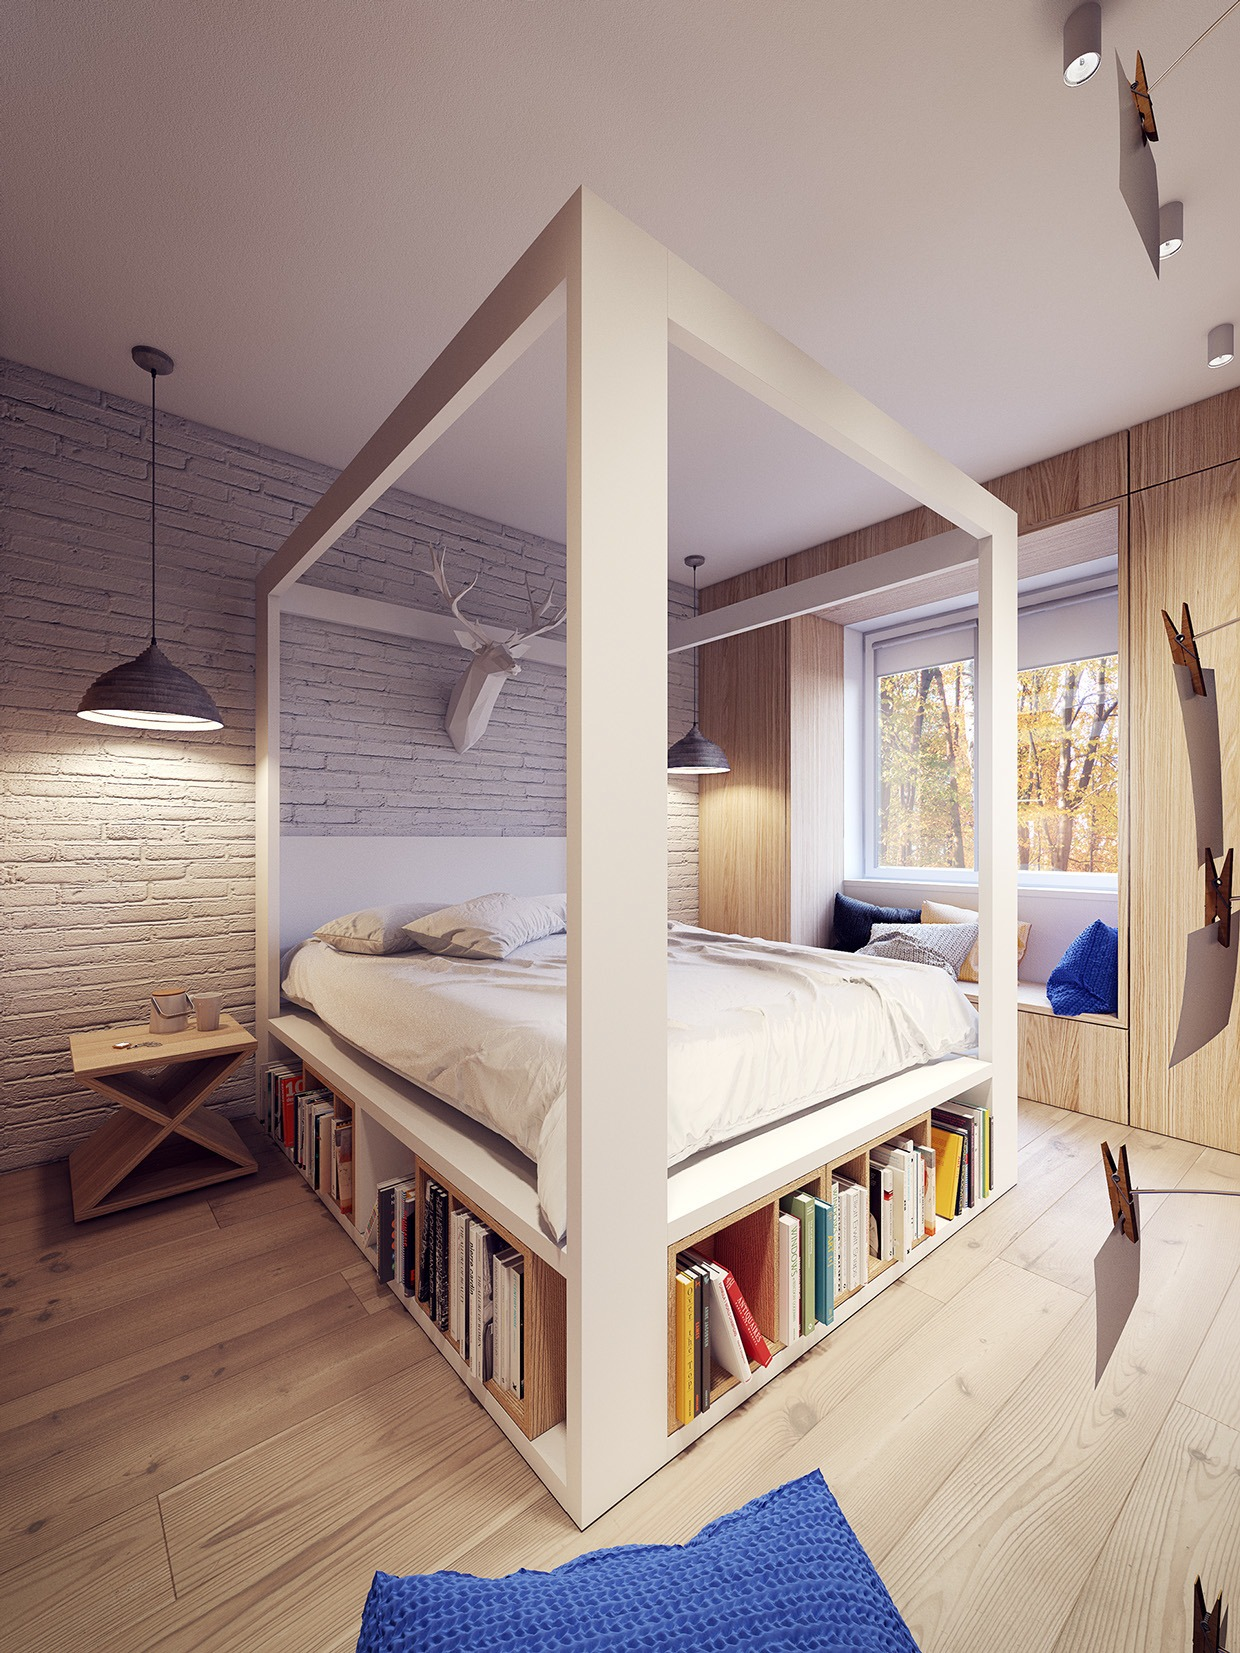 A 60s inspired apartment with a creative layout and upbeat for Bedroom designs with four poster beds